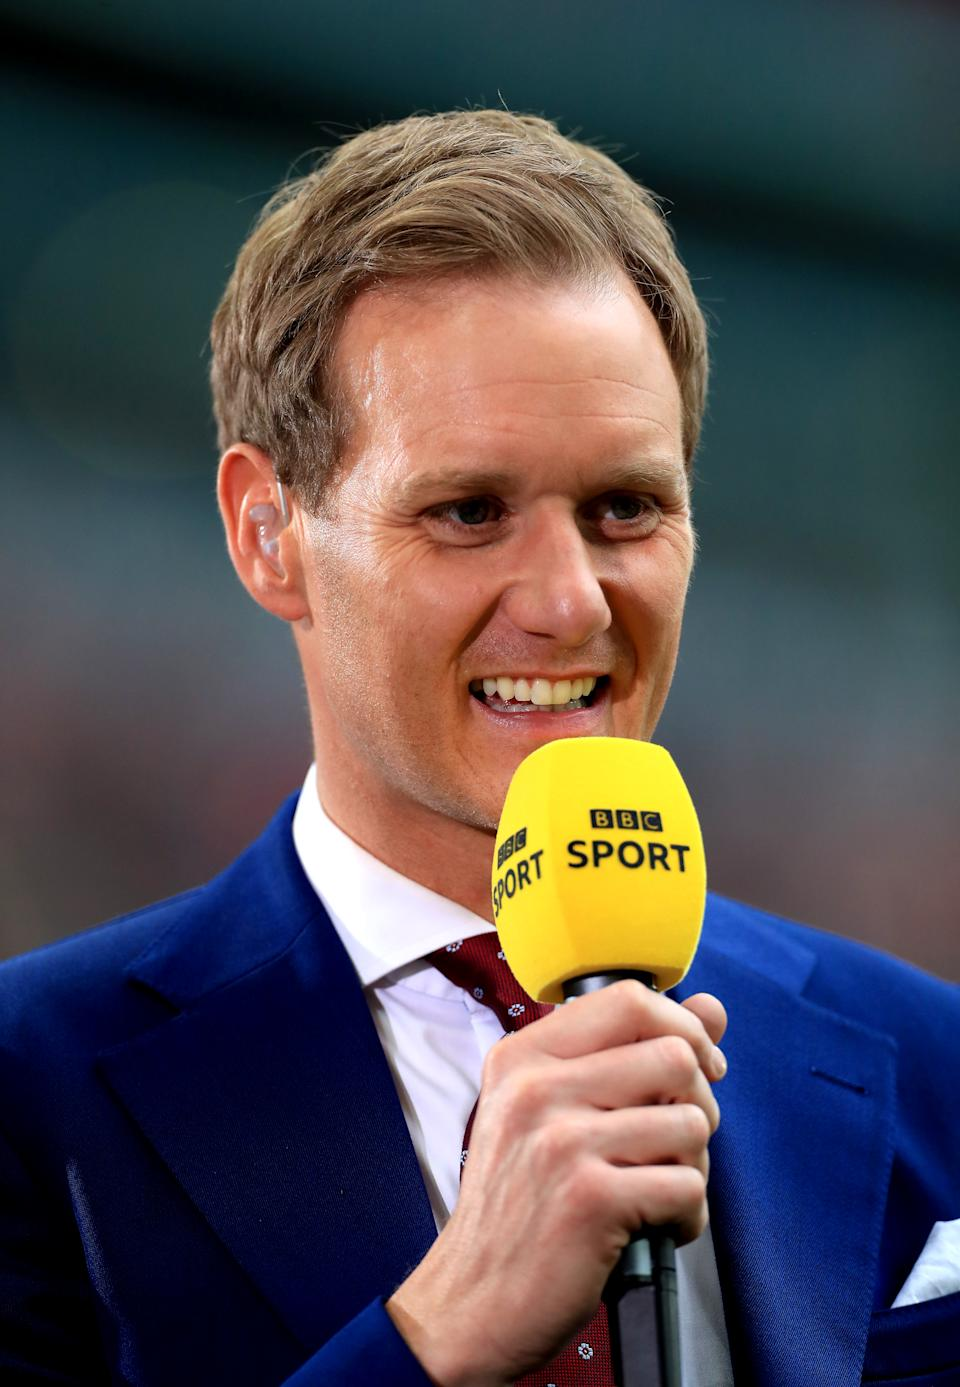 File photo dated 18/5/2019 of Dan Walker who has announced he is stepping down as host of the BBC's Football Focus after 12 years at the helm. The presenter, who also fronts BBC Breakfast, joined the football magazine show at the start of the 2009-10 season. Issue date: Thursday April 8, 2021.